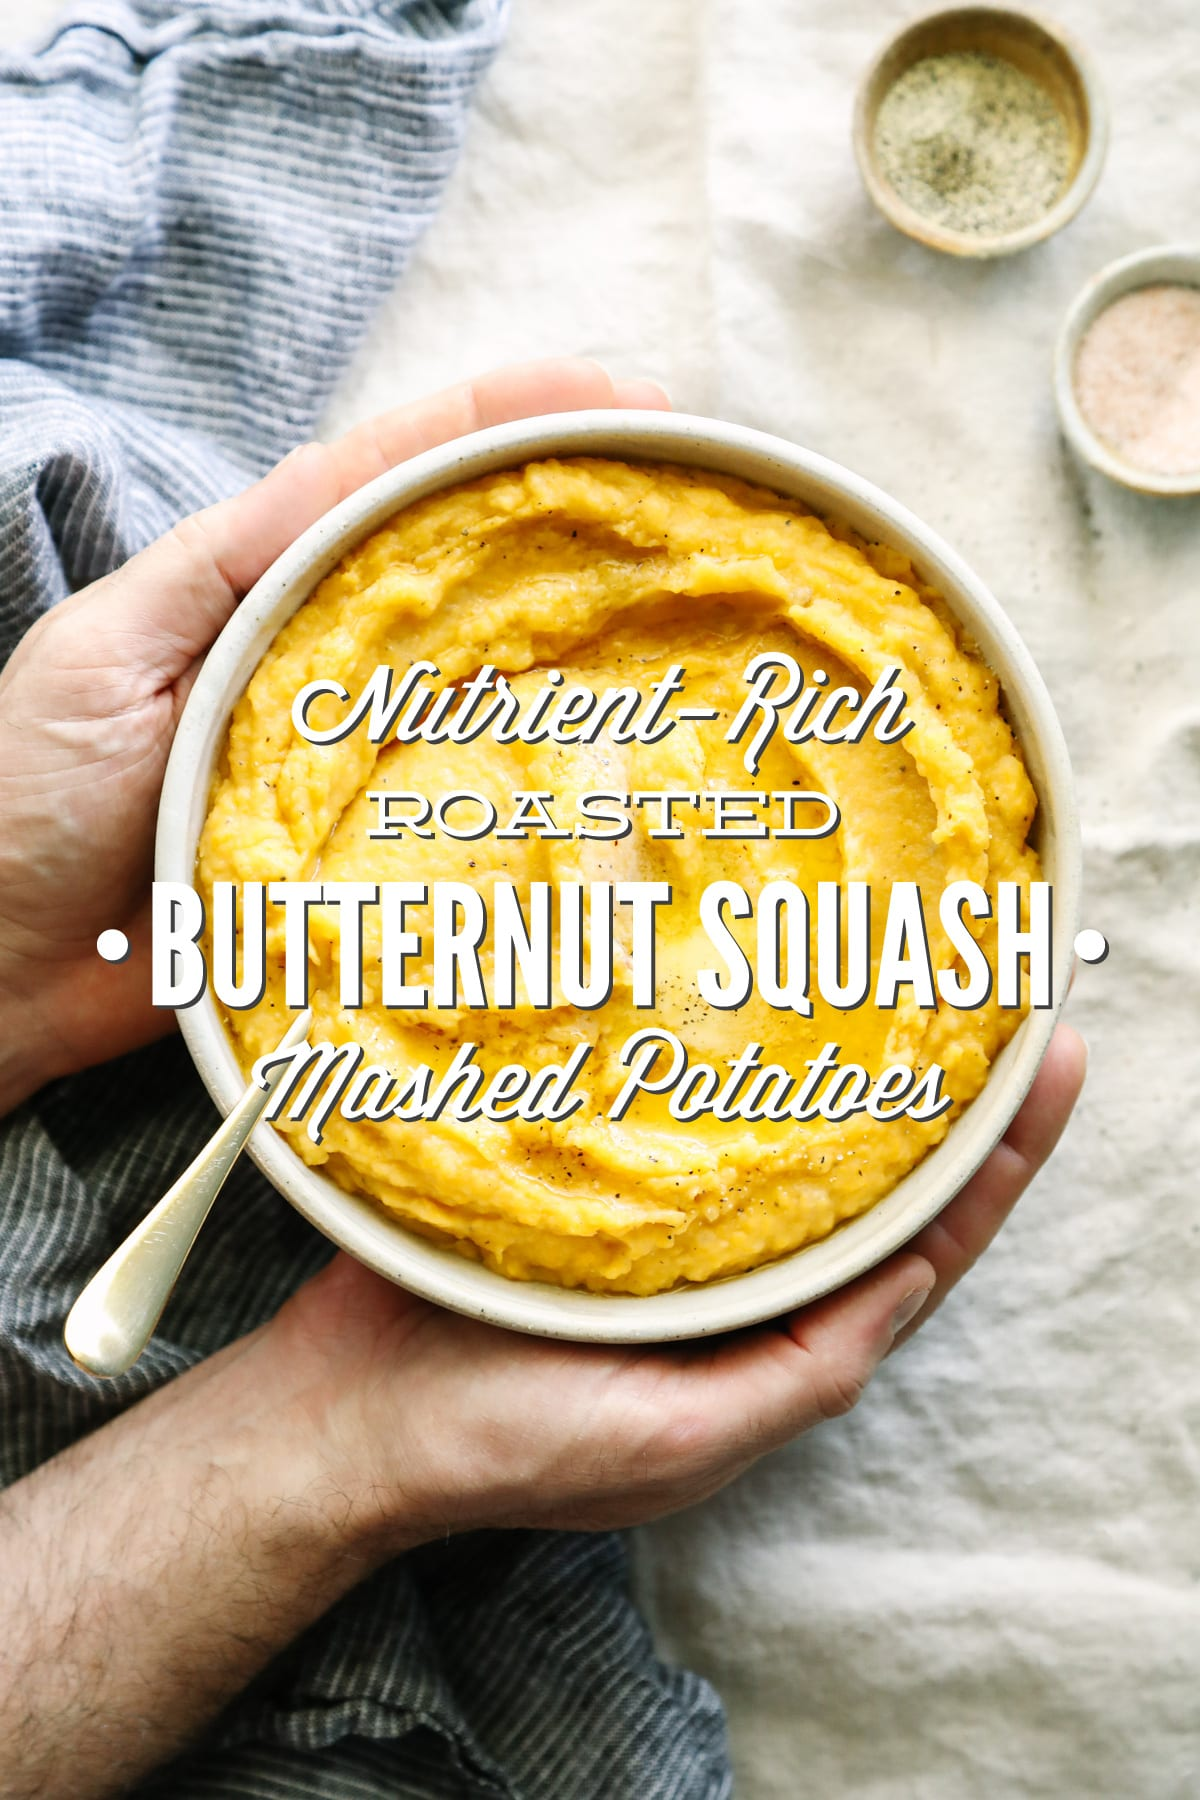 Nutrient-Rich Roasted Butternut Squash Mashed Potatoes